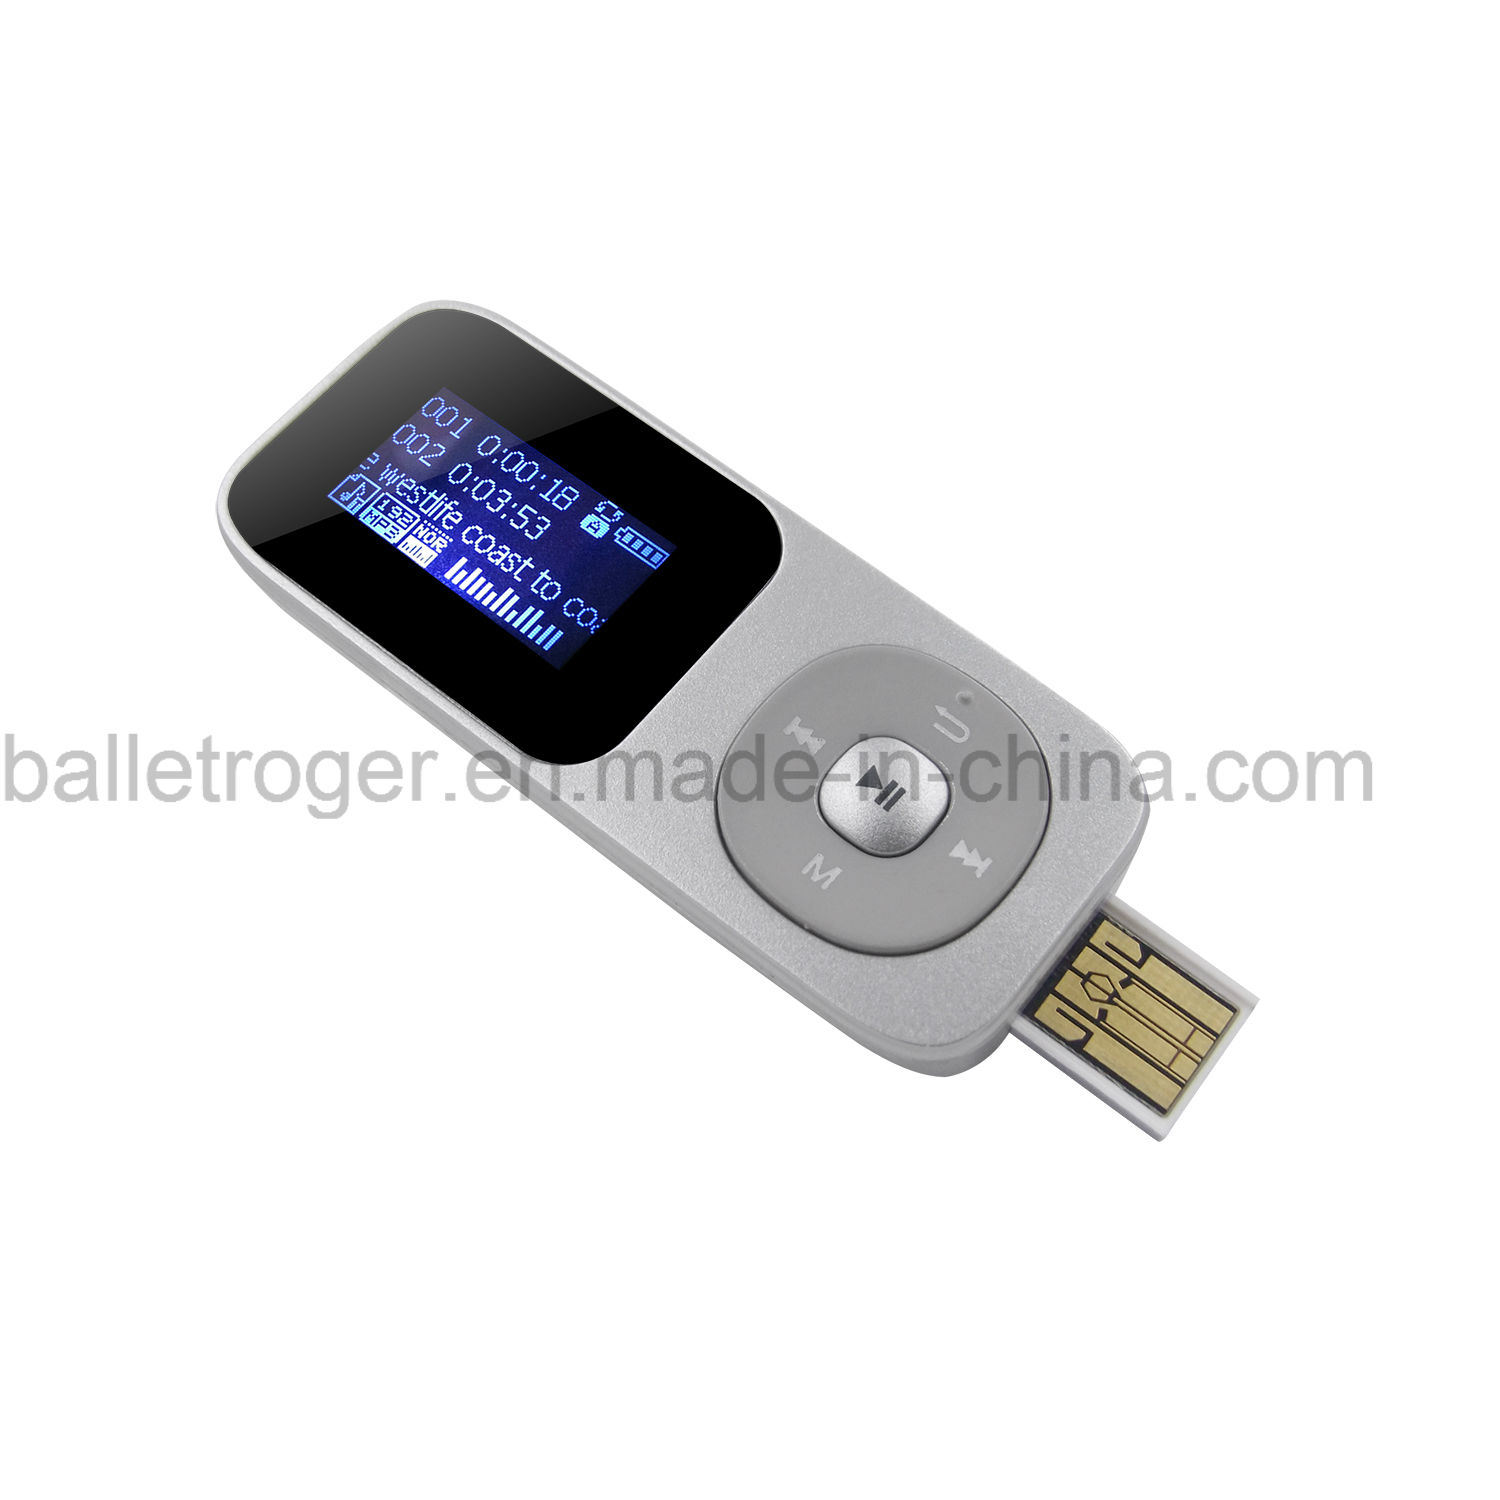 USB MP3 Player with Double Earphone Jack